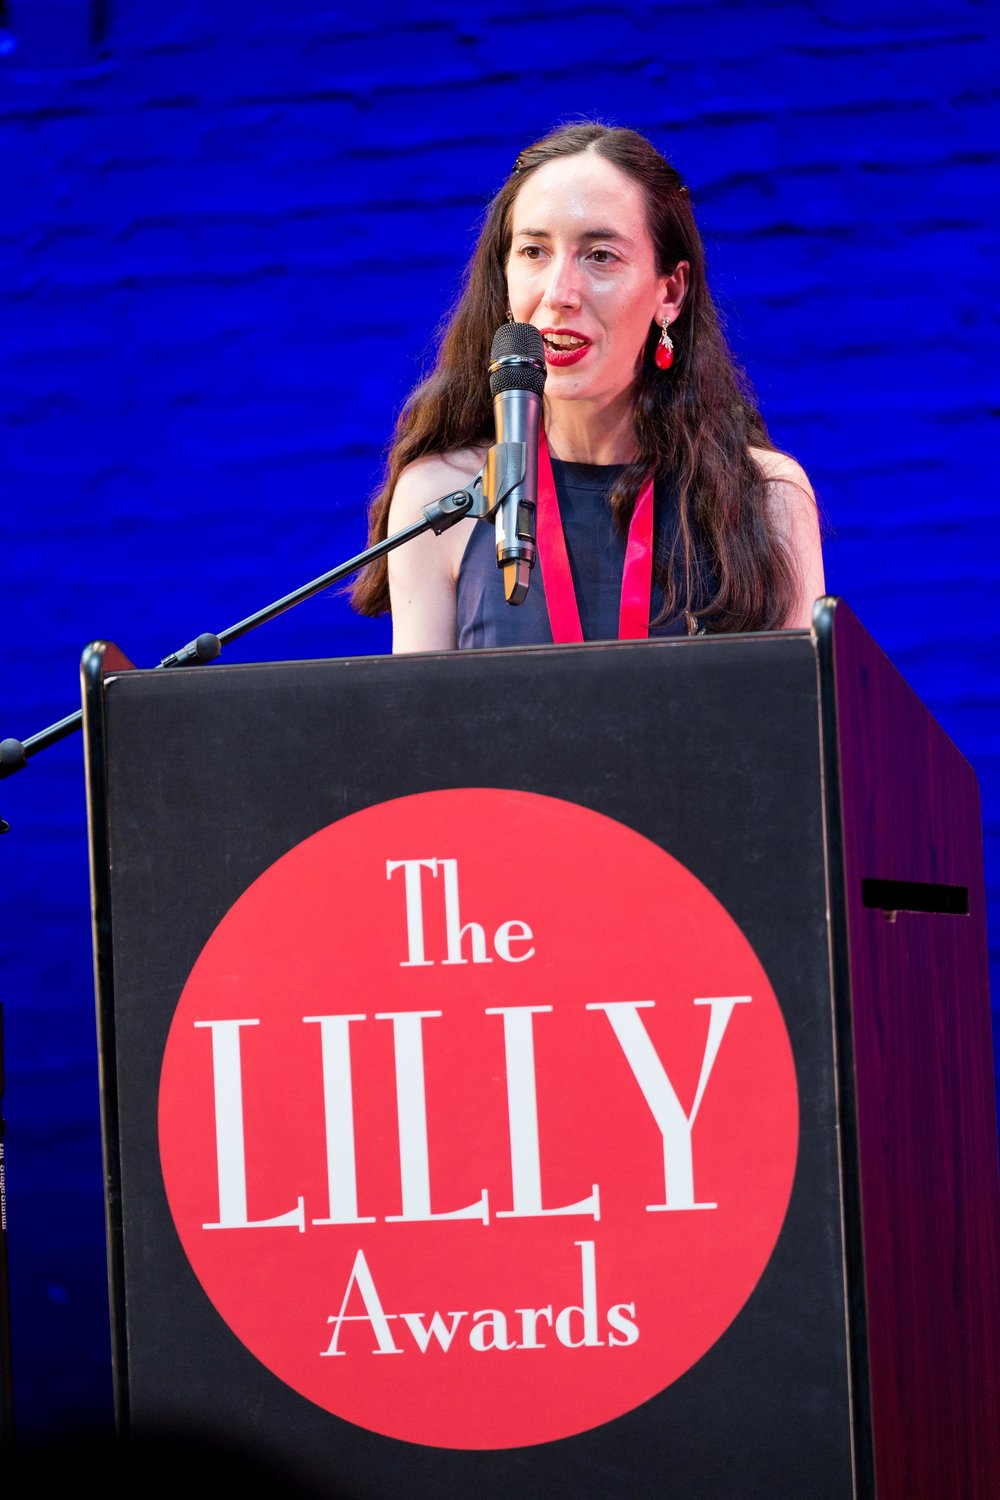 lilly awards 2018-058.jpg